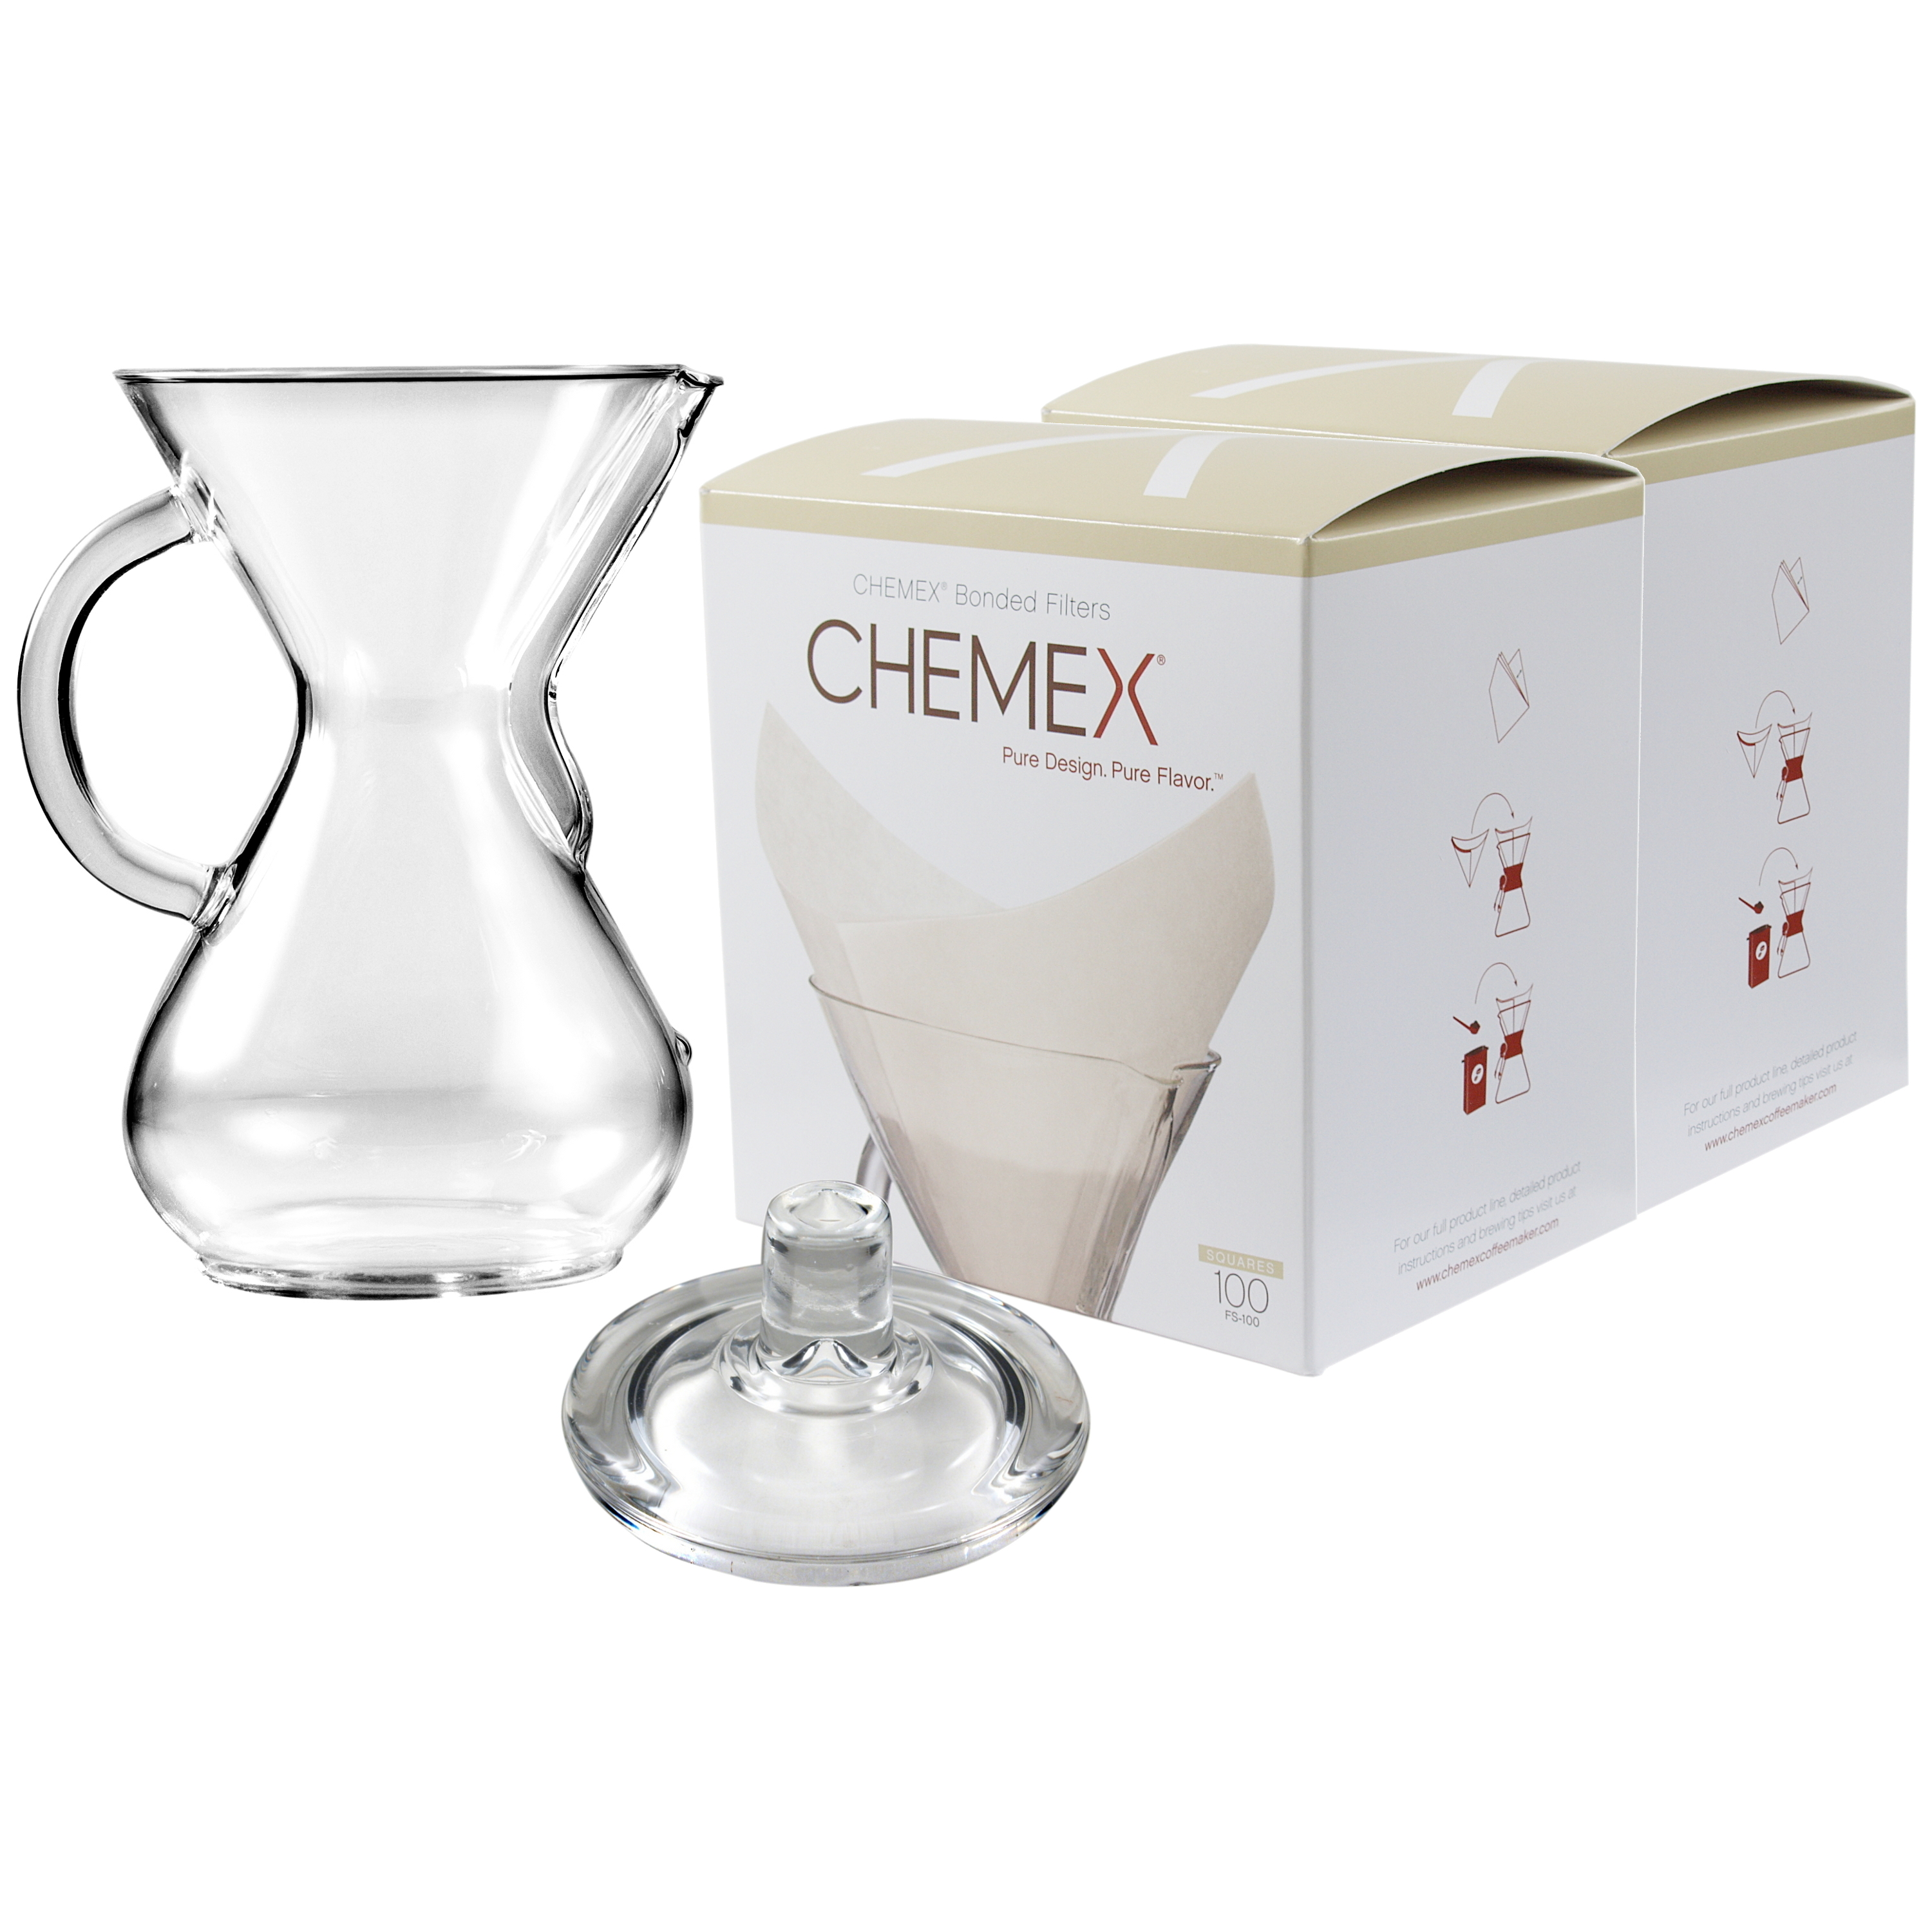 Chemex Glass 30 Ounce Coffee Maker with Cover and 200 Count Oxygen Cleansed Bonded Square Coffee Filters